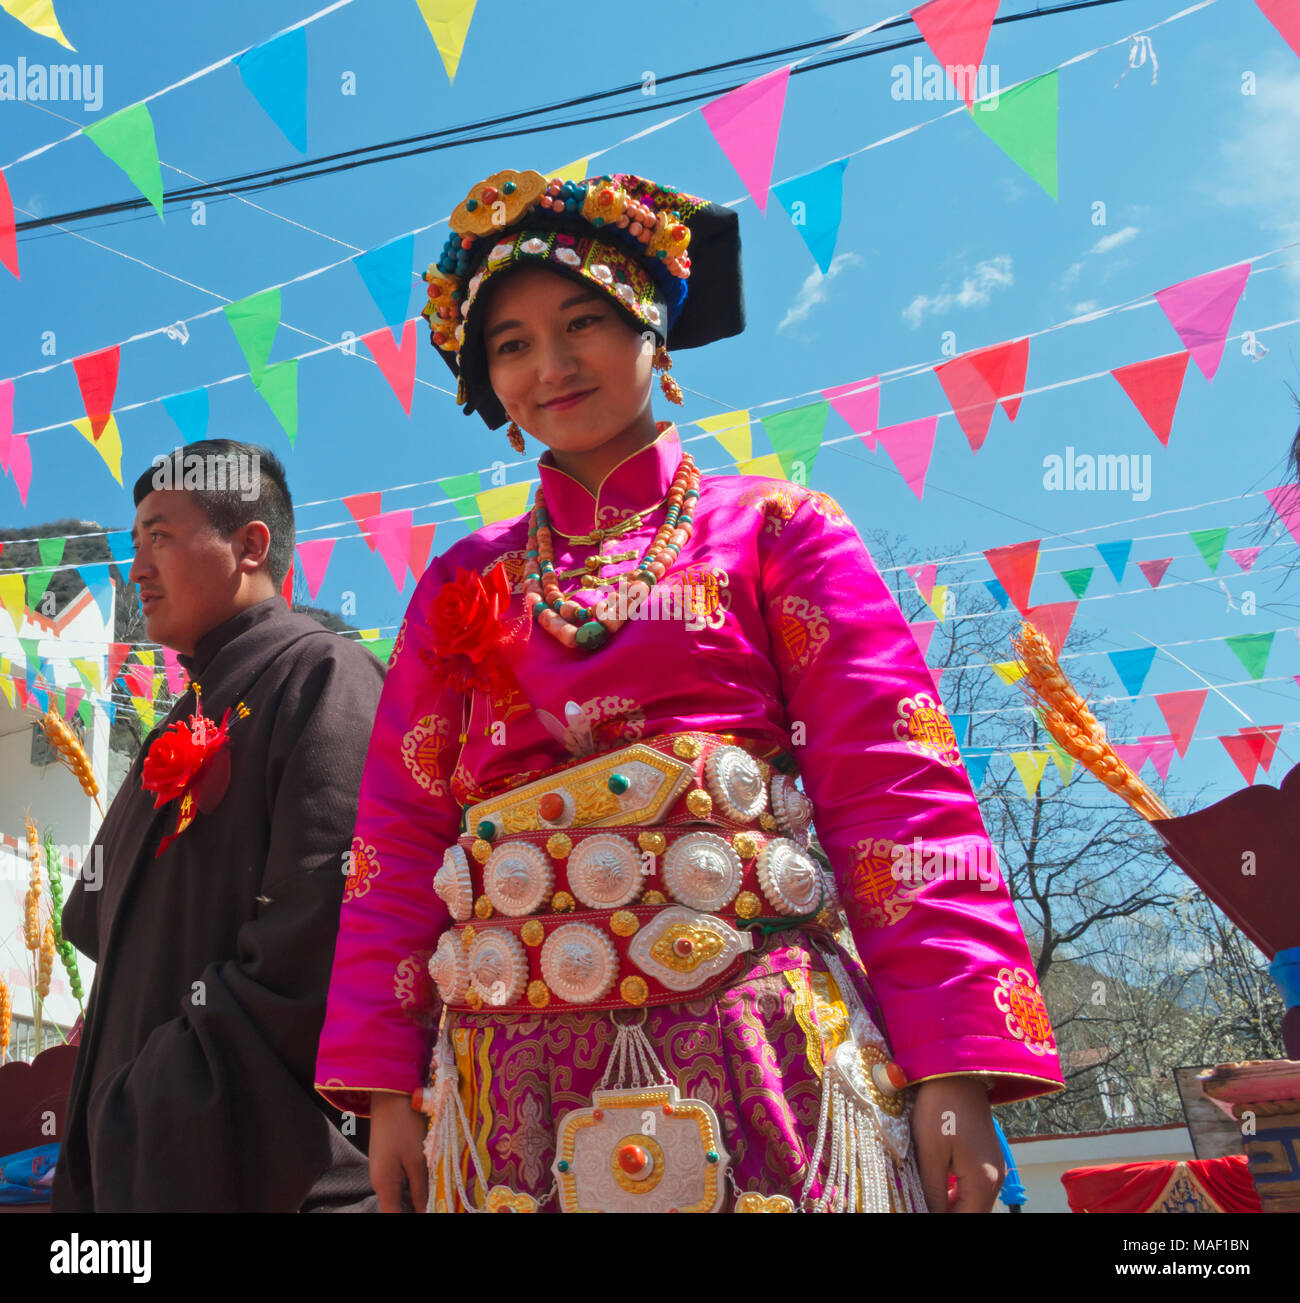 Tibetan wedding ceremony, Jinchuan County, Sichuan Province, China - Stock Image